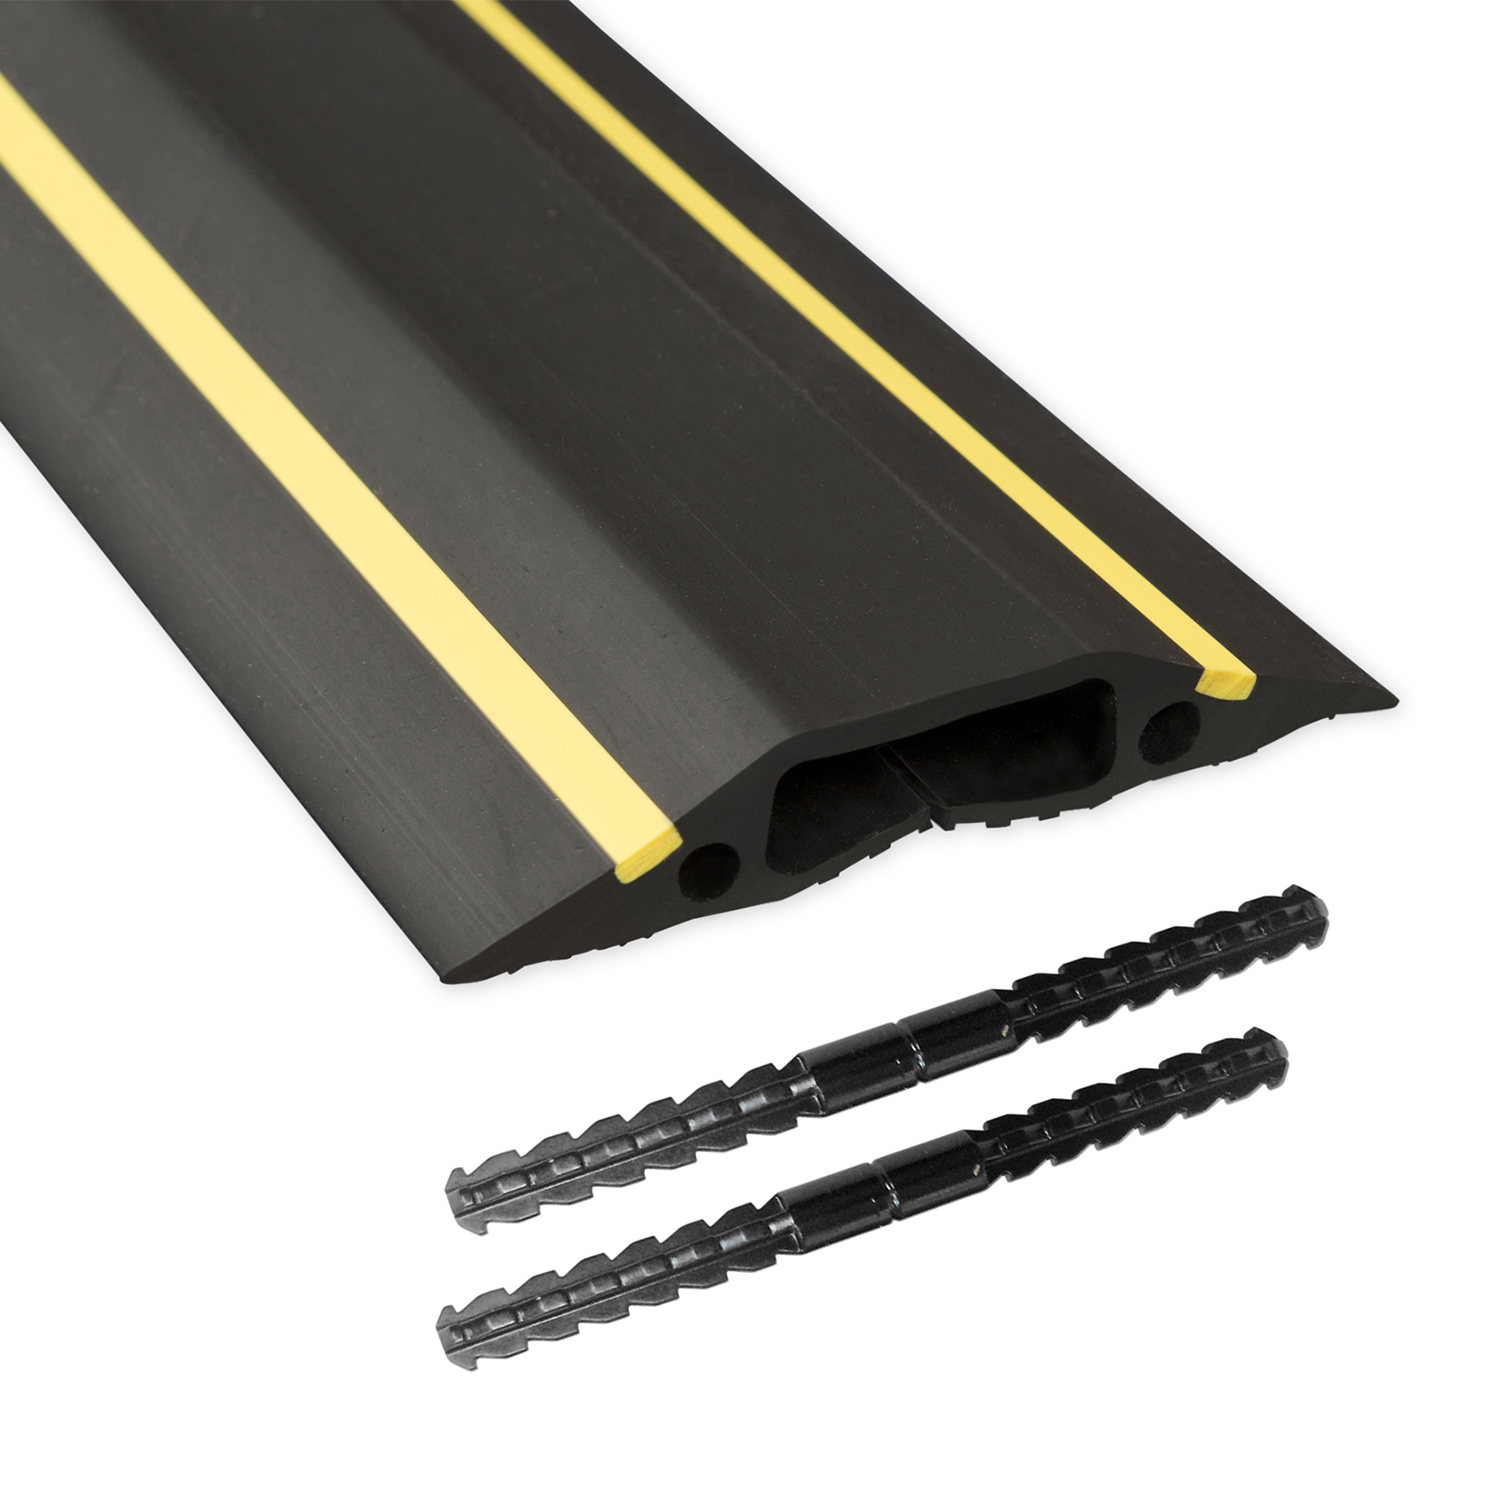 Cable Tidies D-Line Floor Cable Cover 83mm x 1.8m Black and Yellow Ref FC83H